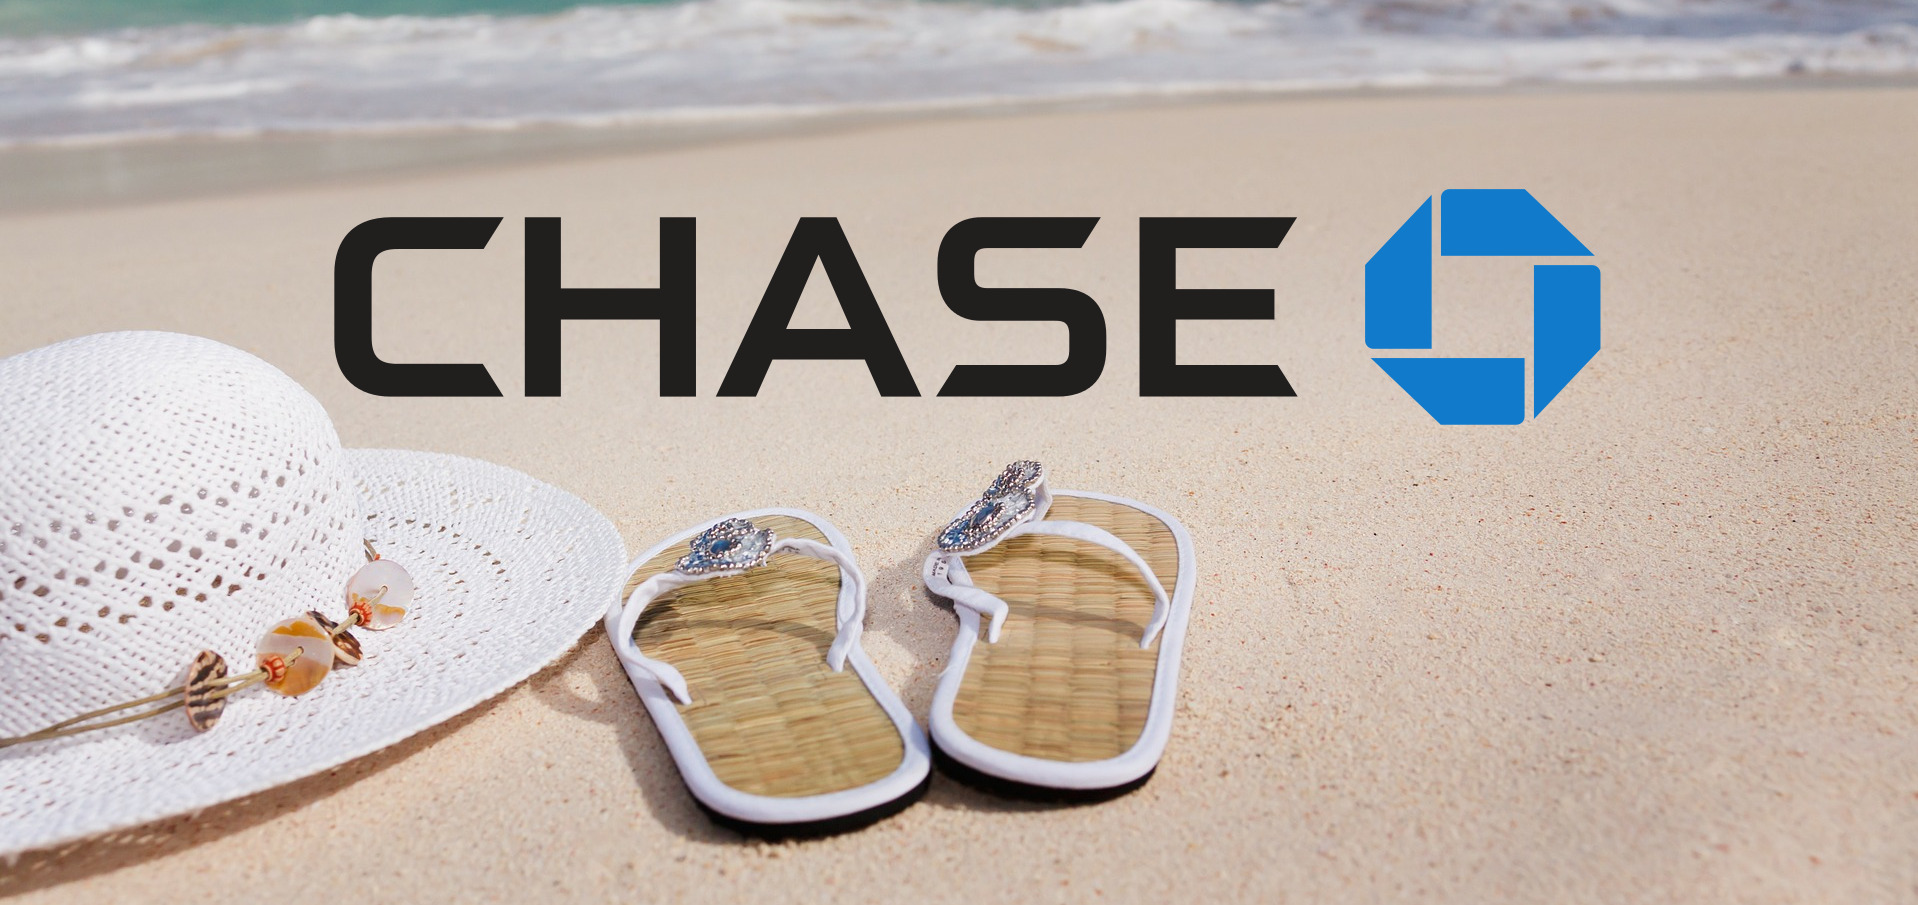 Chase Bank Holidays for 2017 | Banks.org